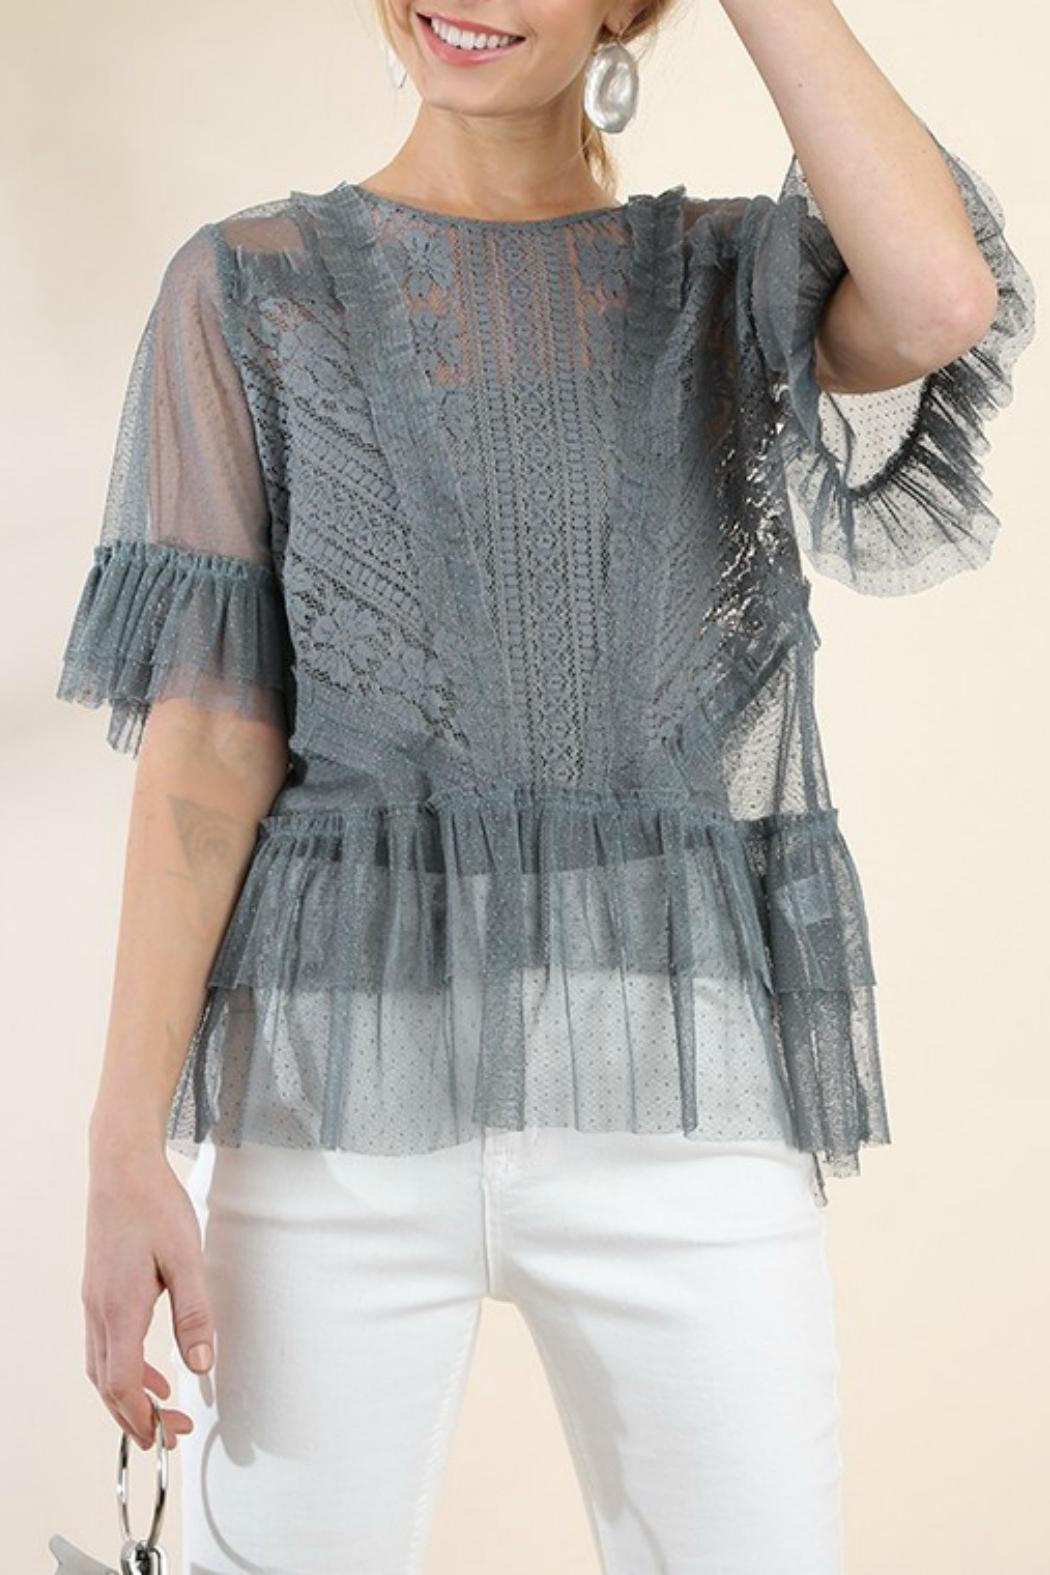 Umgee USA Ruffle Lace Top - Front Full Image